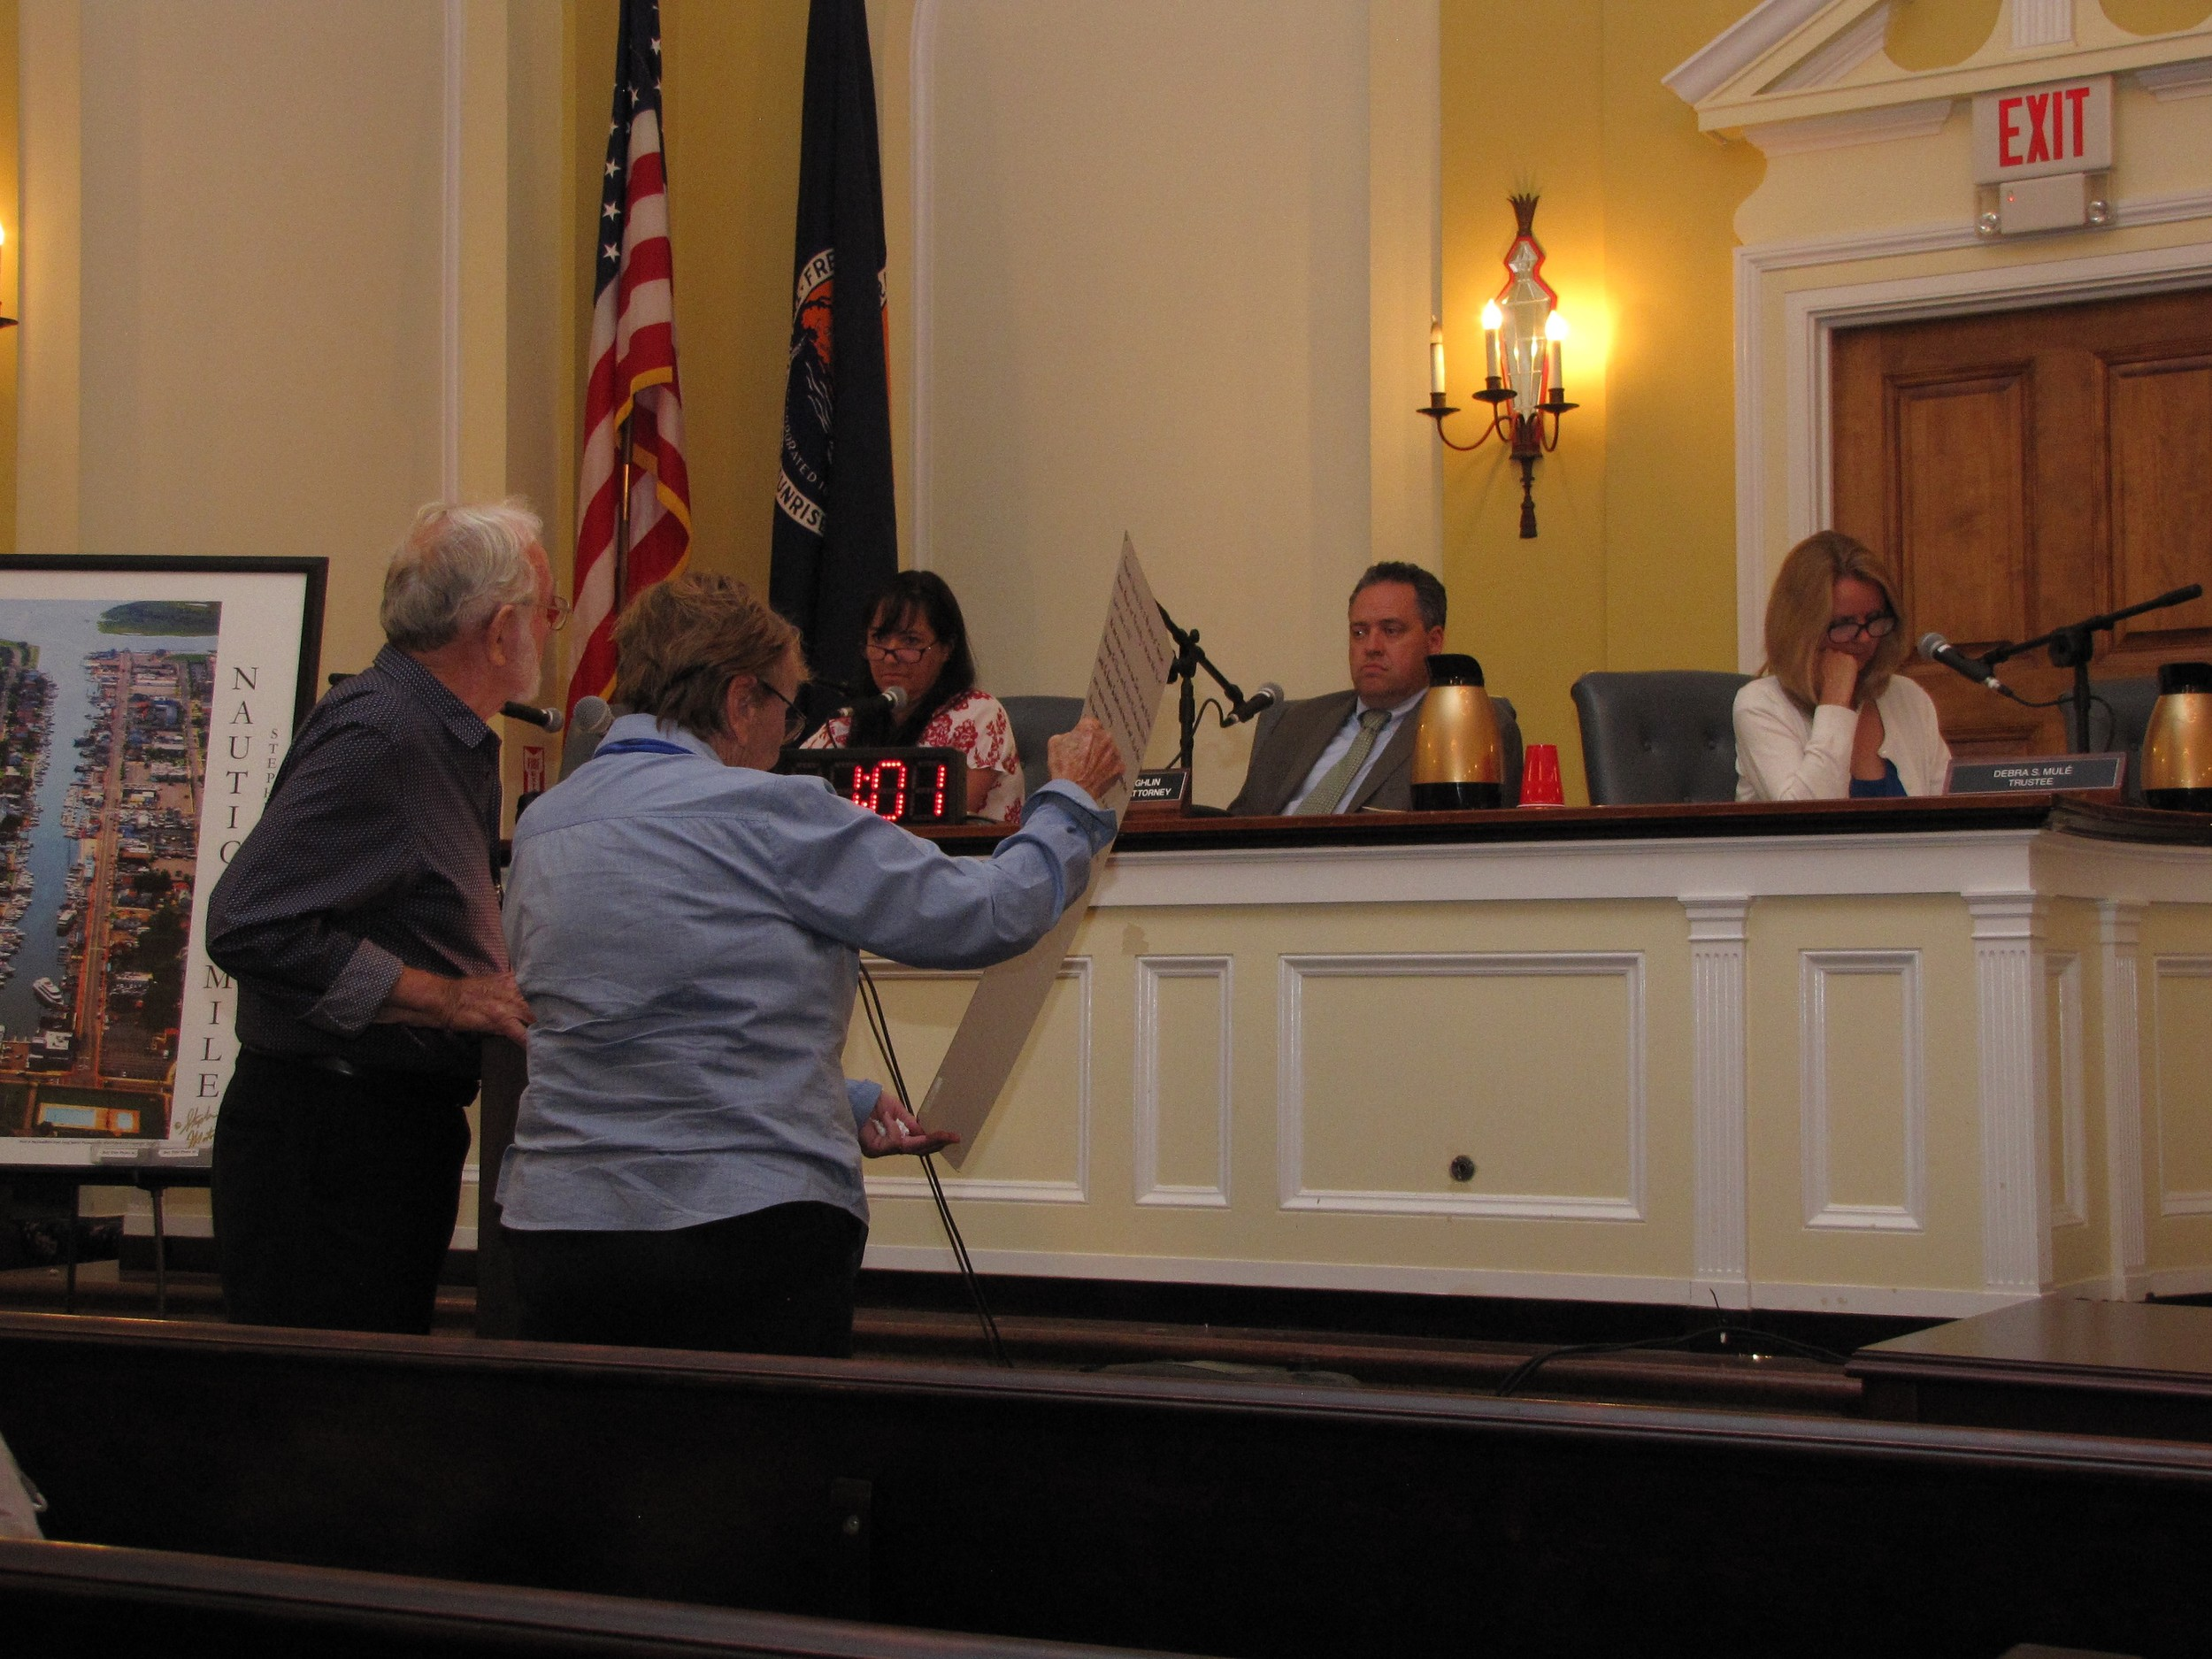 Al and Rosemary Grover, addressed the Freeport board of trustees at the Aug. 21 meeting, which focused on parking on the Nautical Mile.